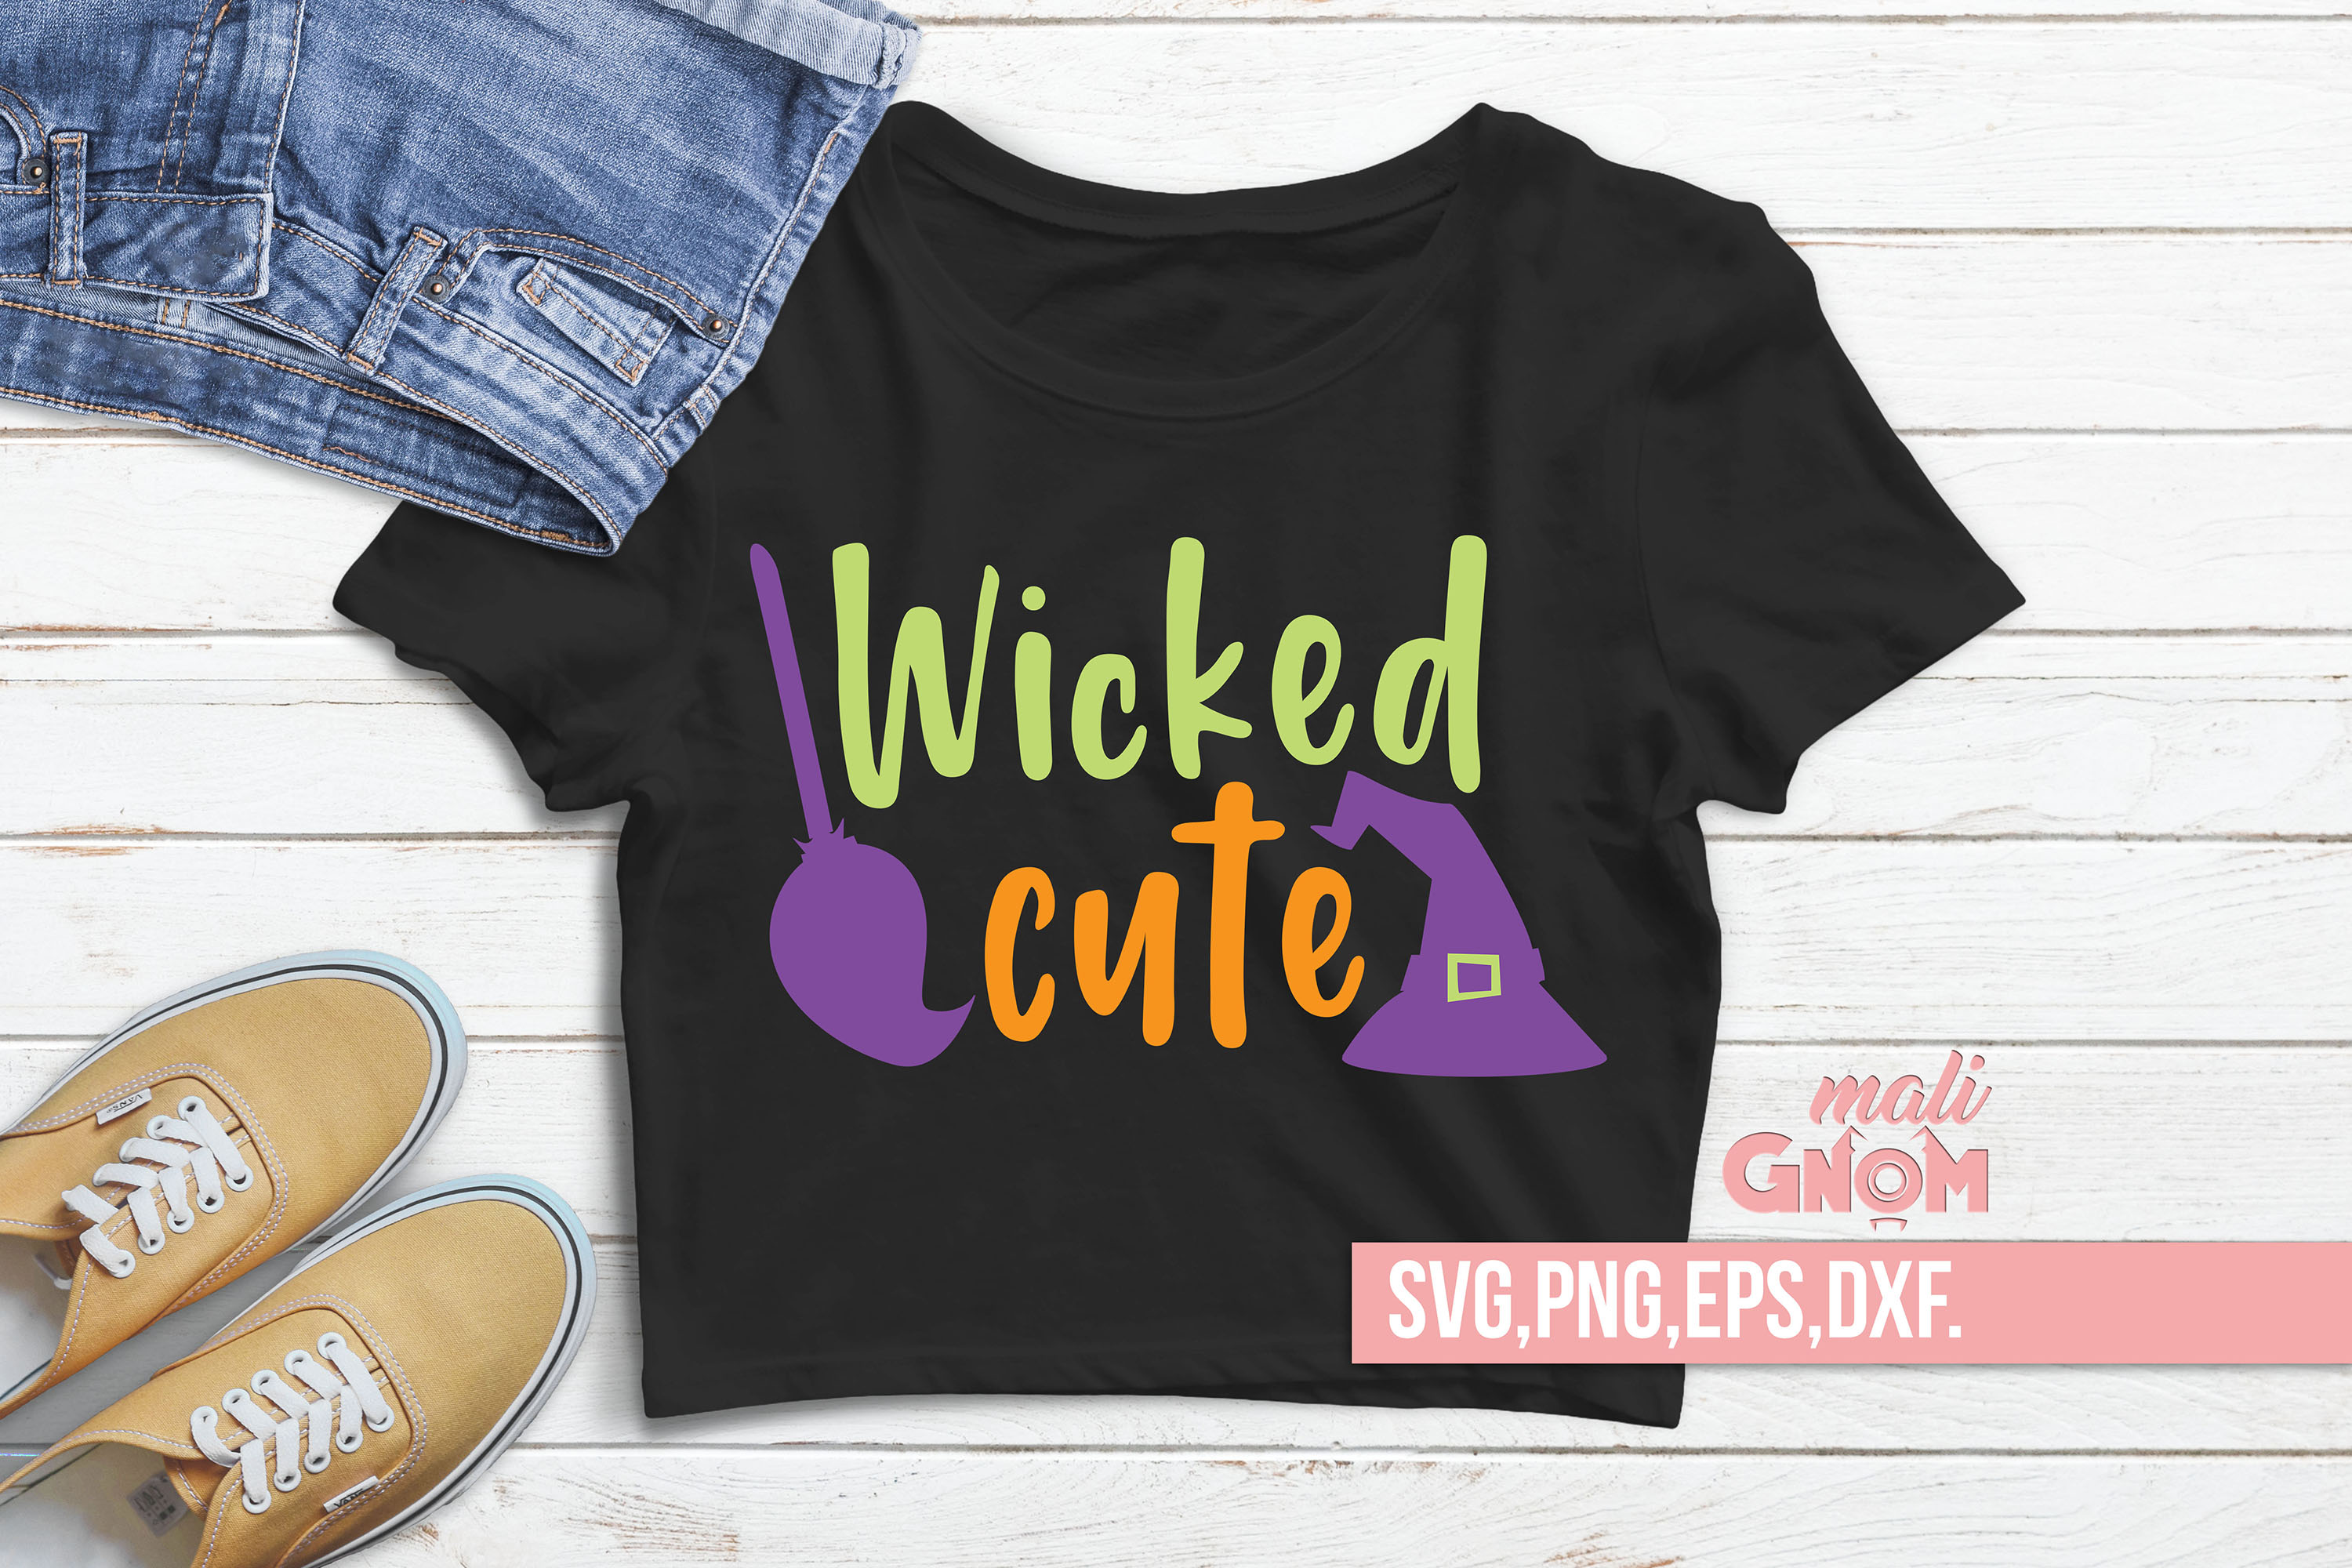 Wicked Cute SVG, Halloween SVG file, Trick or Treat Bag SVG example image 2